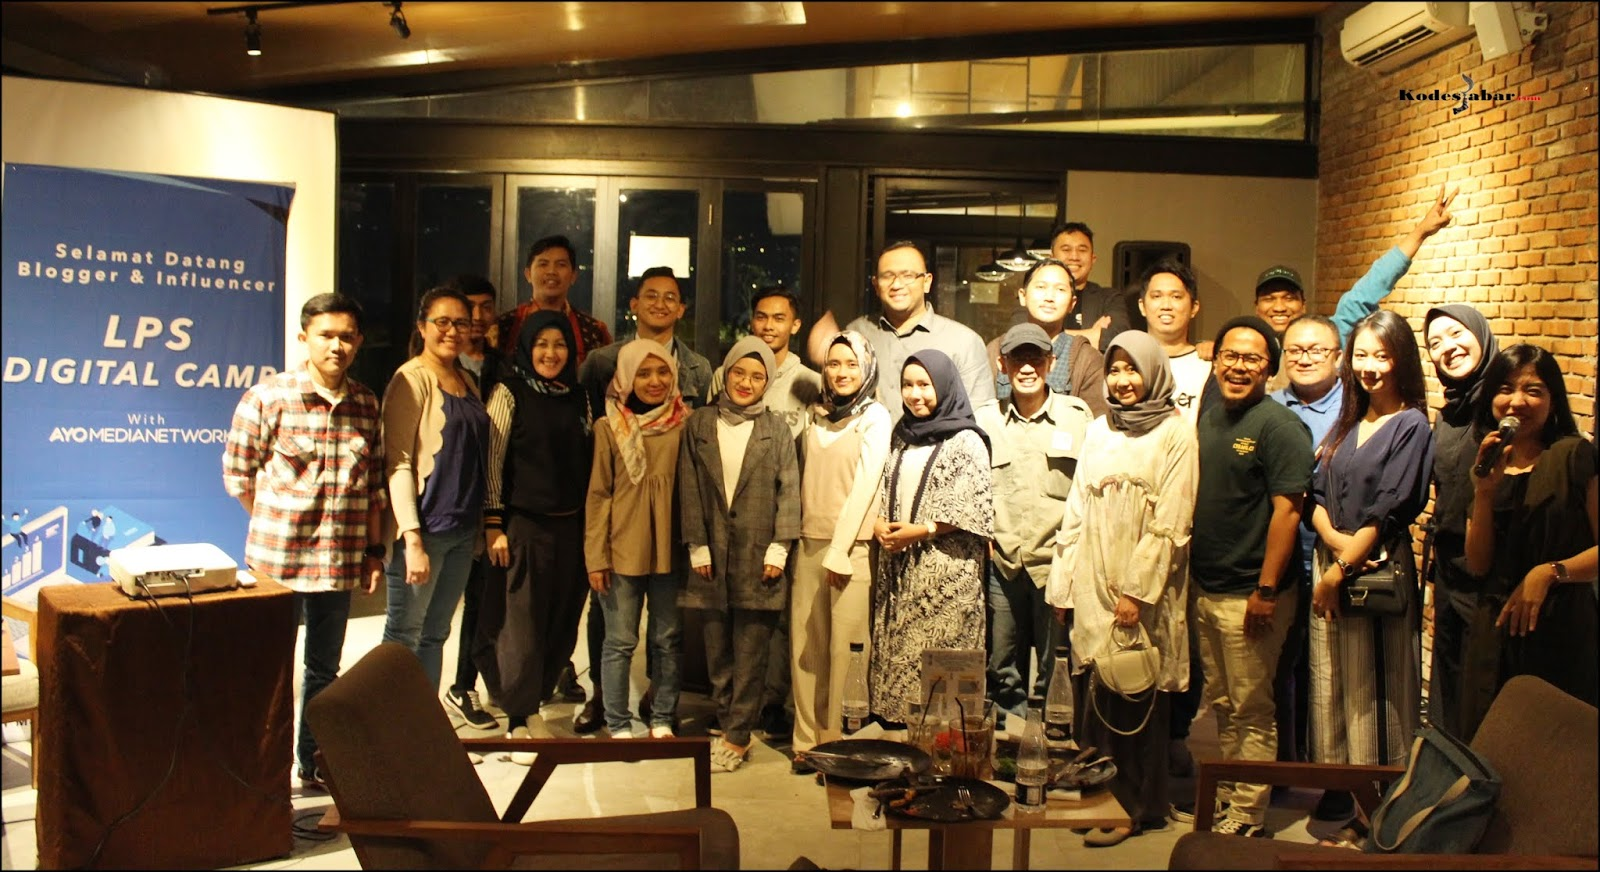 Foto bersama LPS, Ayo Media Network, Blogger, dan Influencer